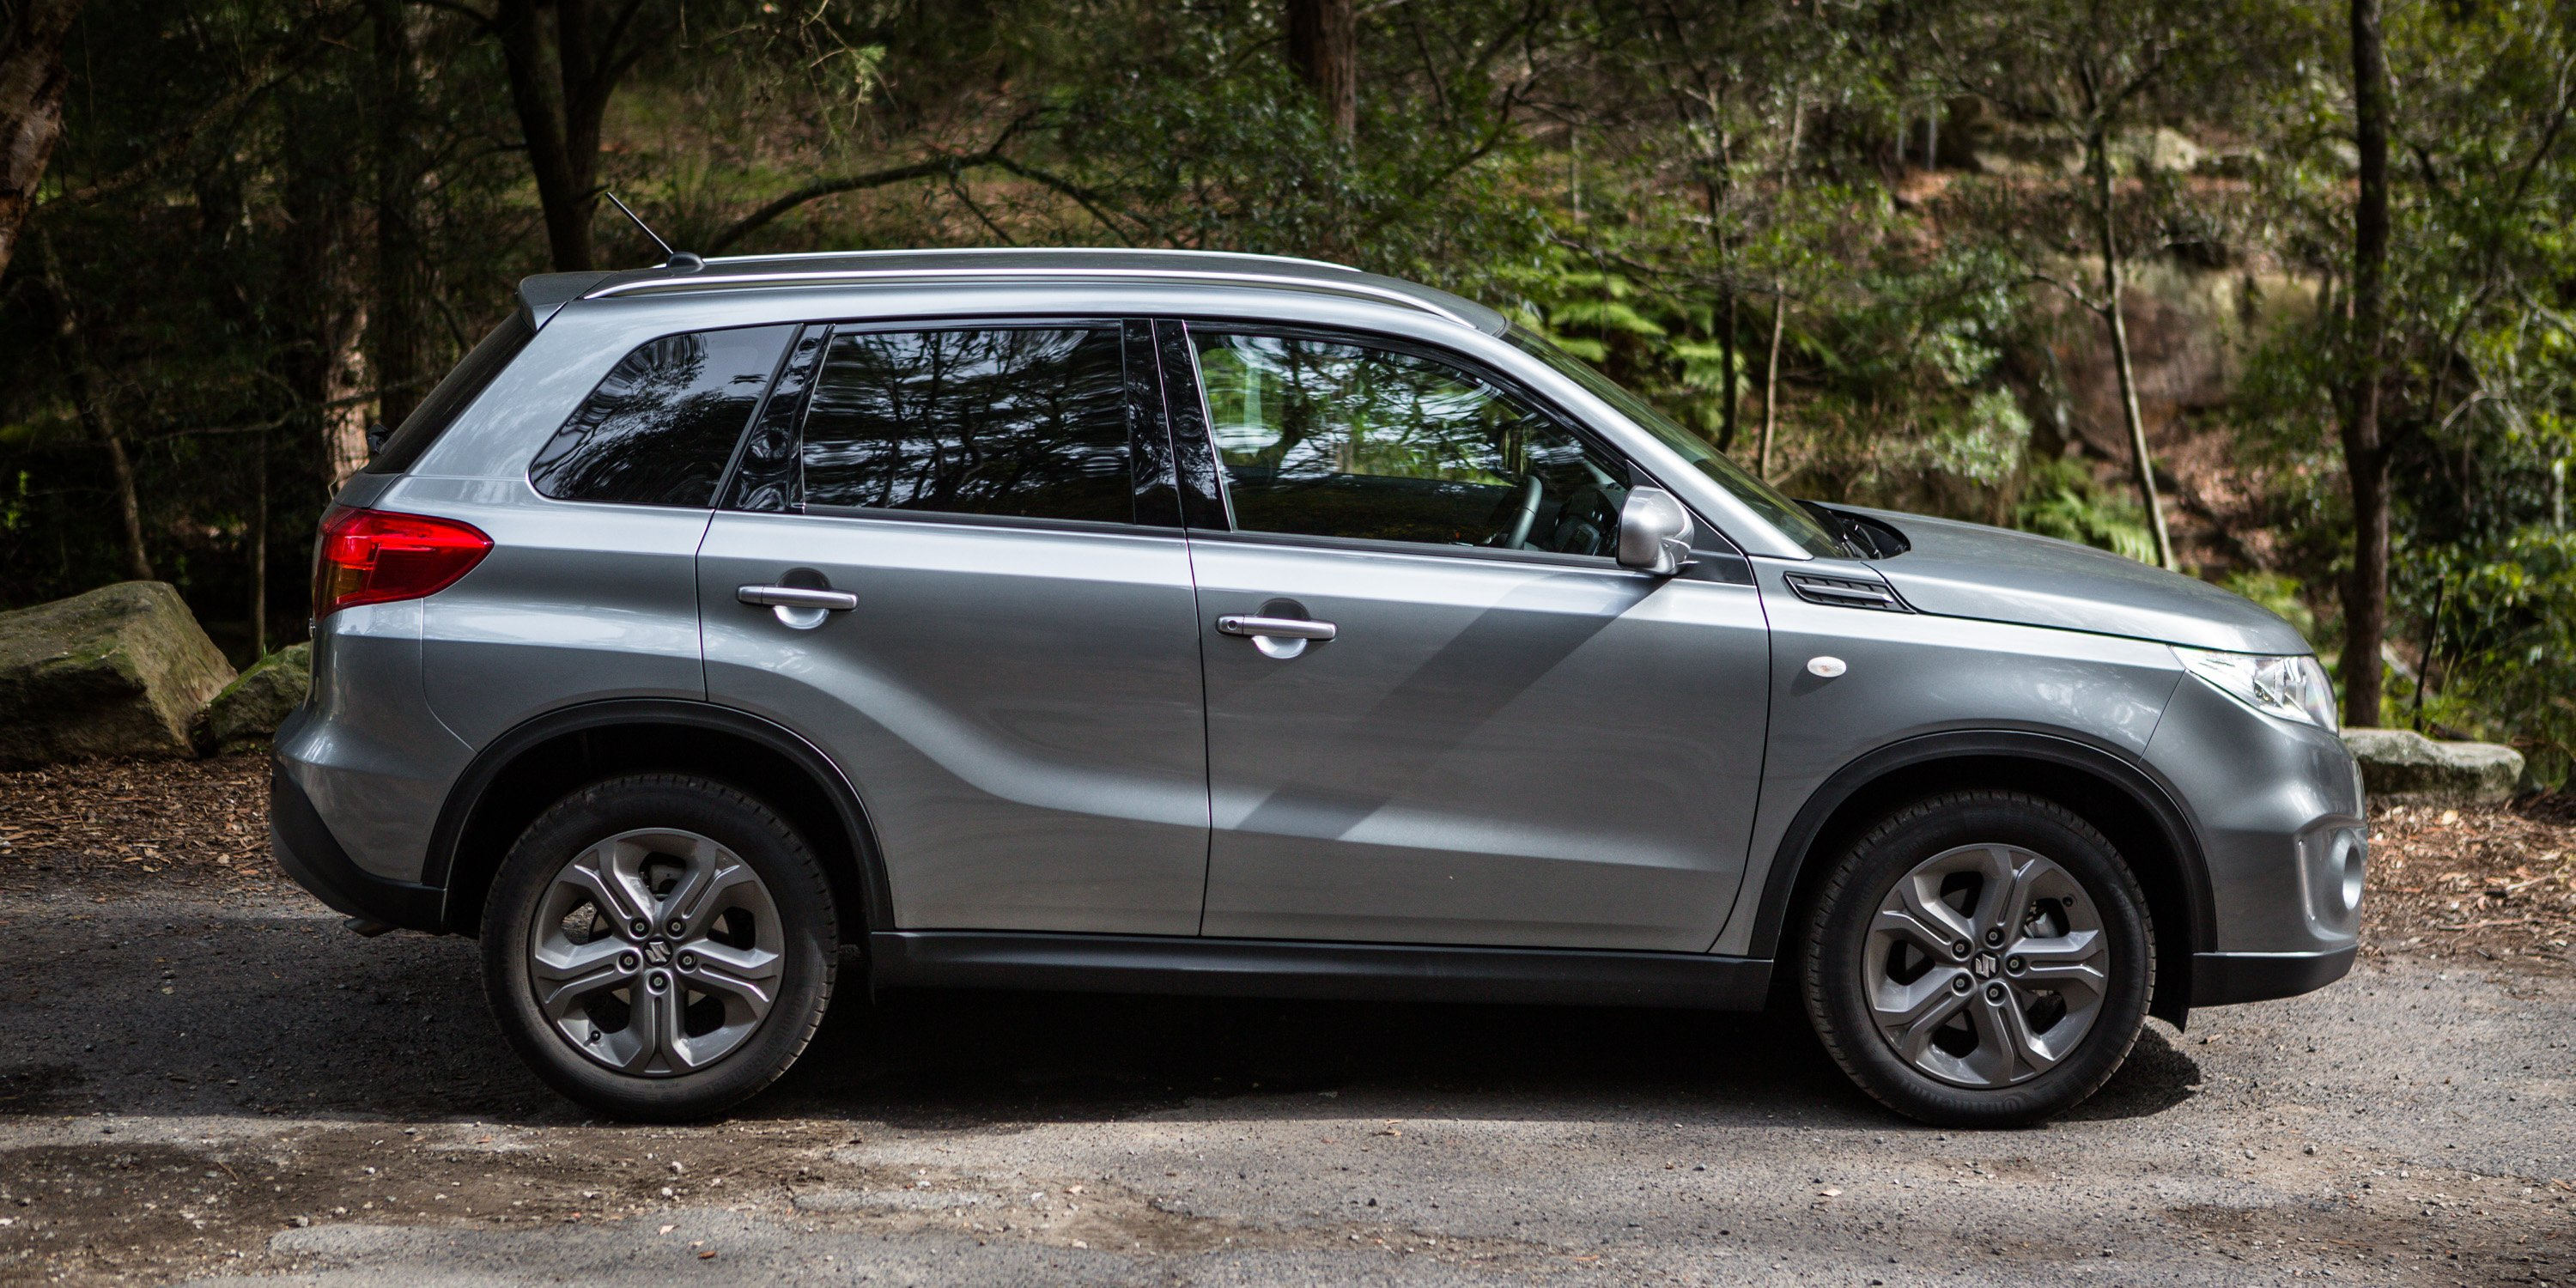 News 4 Tucson >> 2016 Suzuki Vitara Range Review - Photos